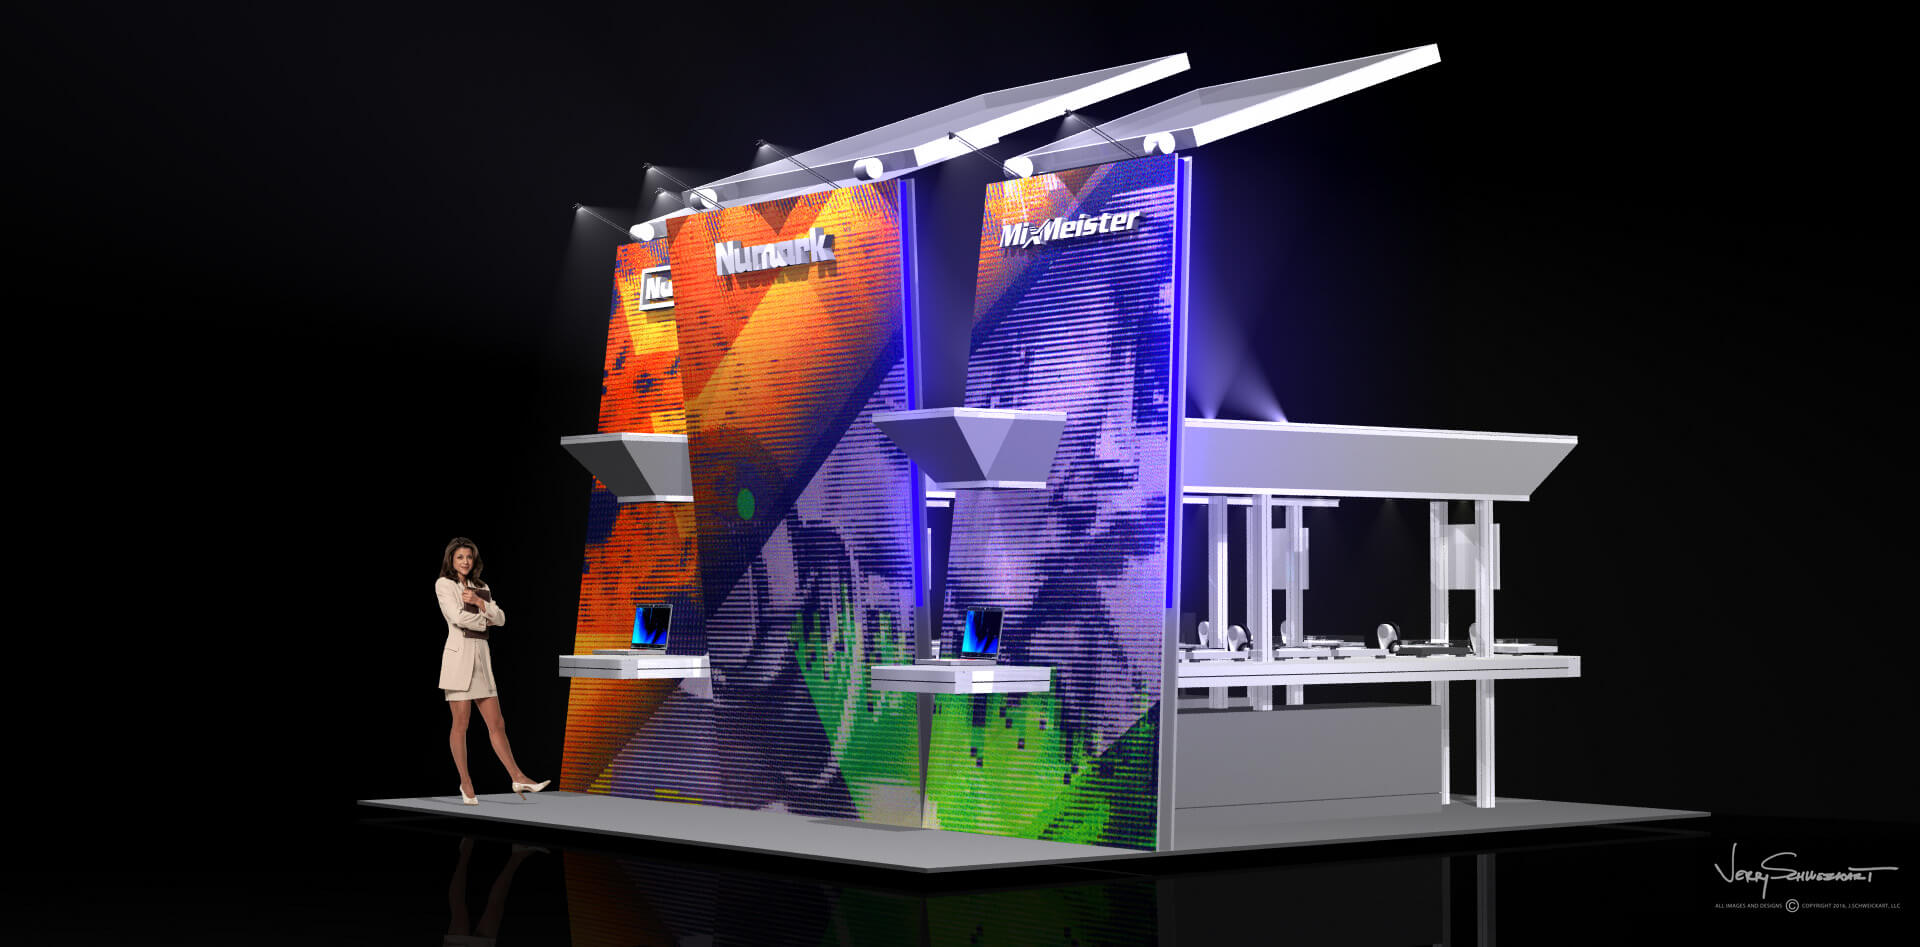 Numark Audio 20 x 20 Exhibit Stand Designed by Industrial Designer Jer Schweickart